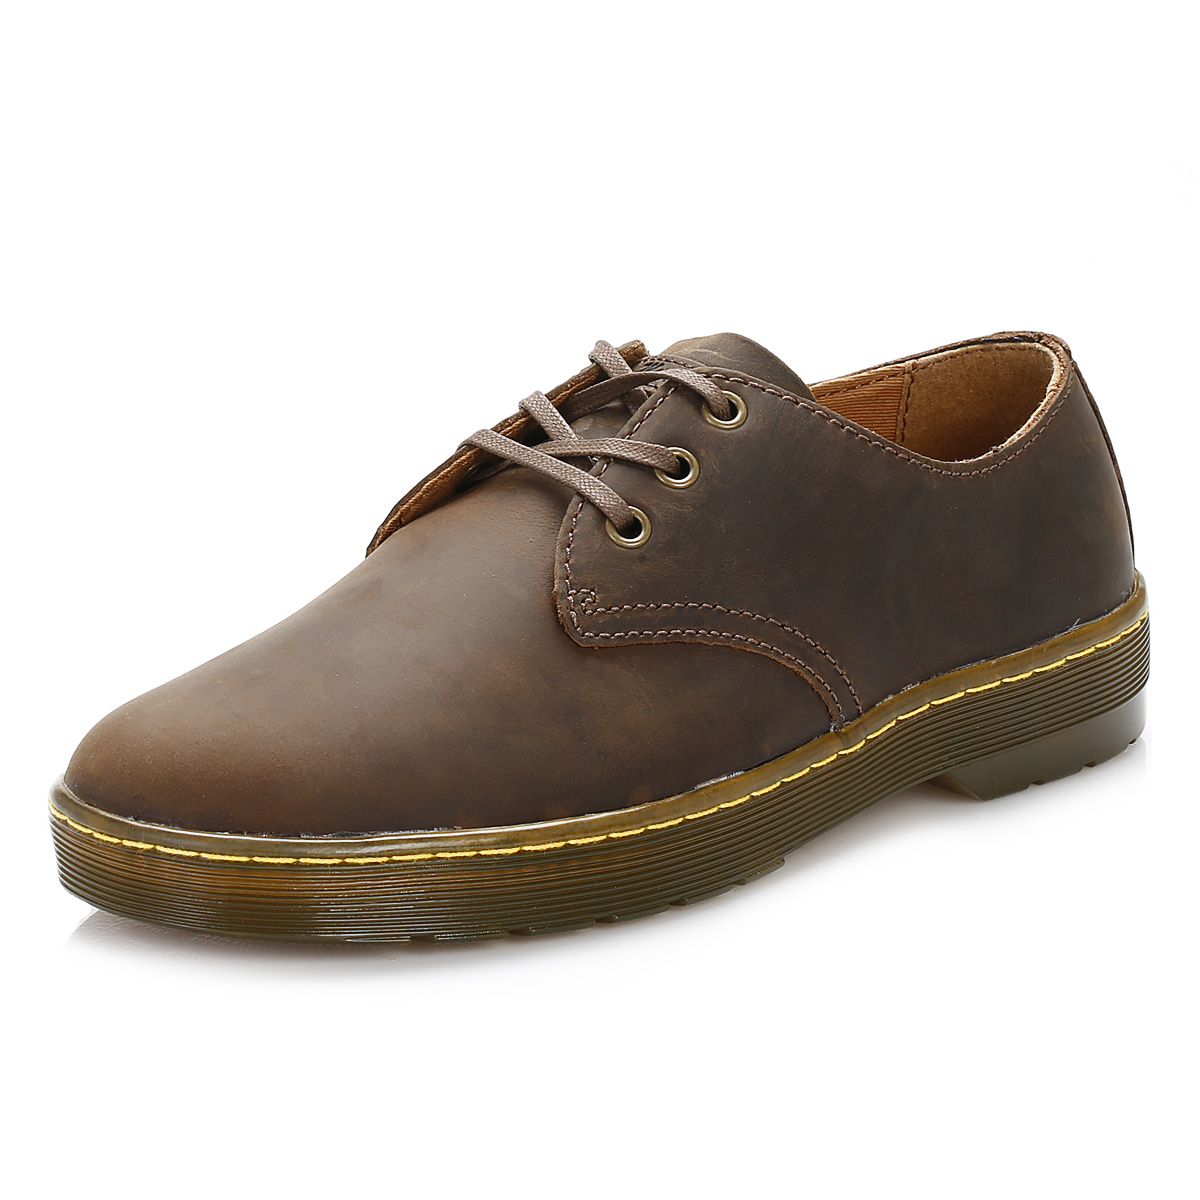 dr martens mens brown leather derby shoes lace up smart casual docs ebay. Black Bedroom Furniture Sets. Home Design Ideas